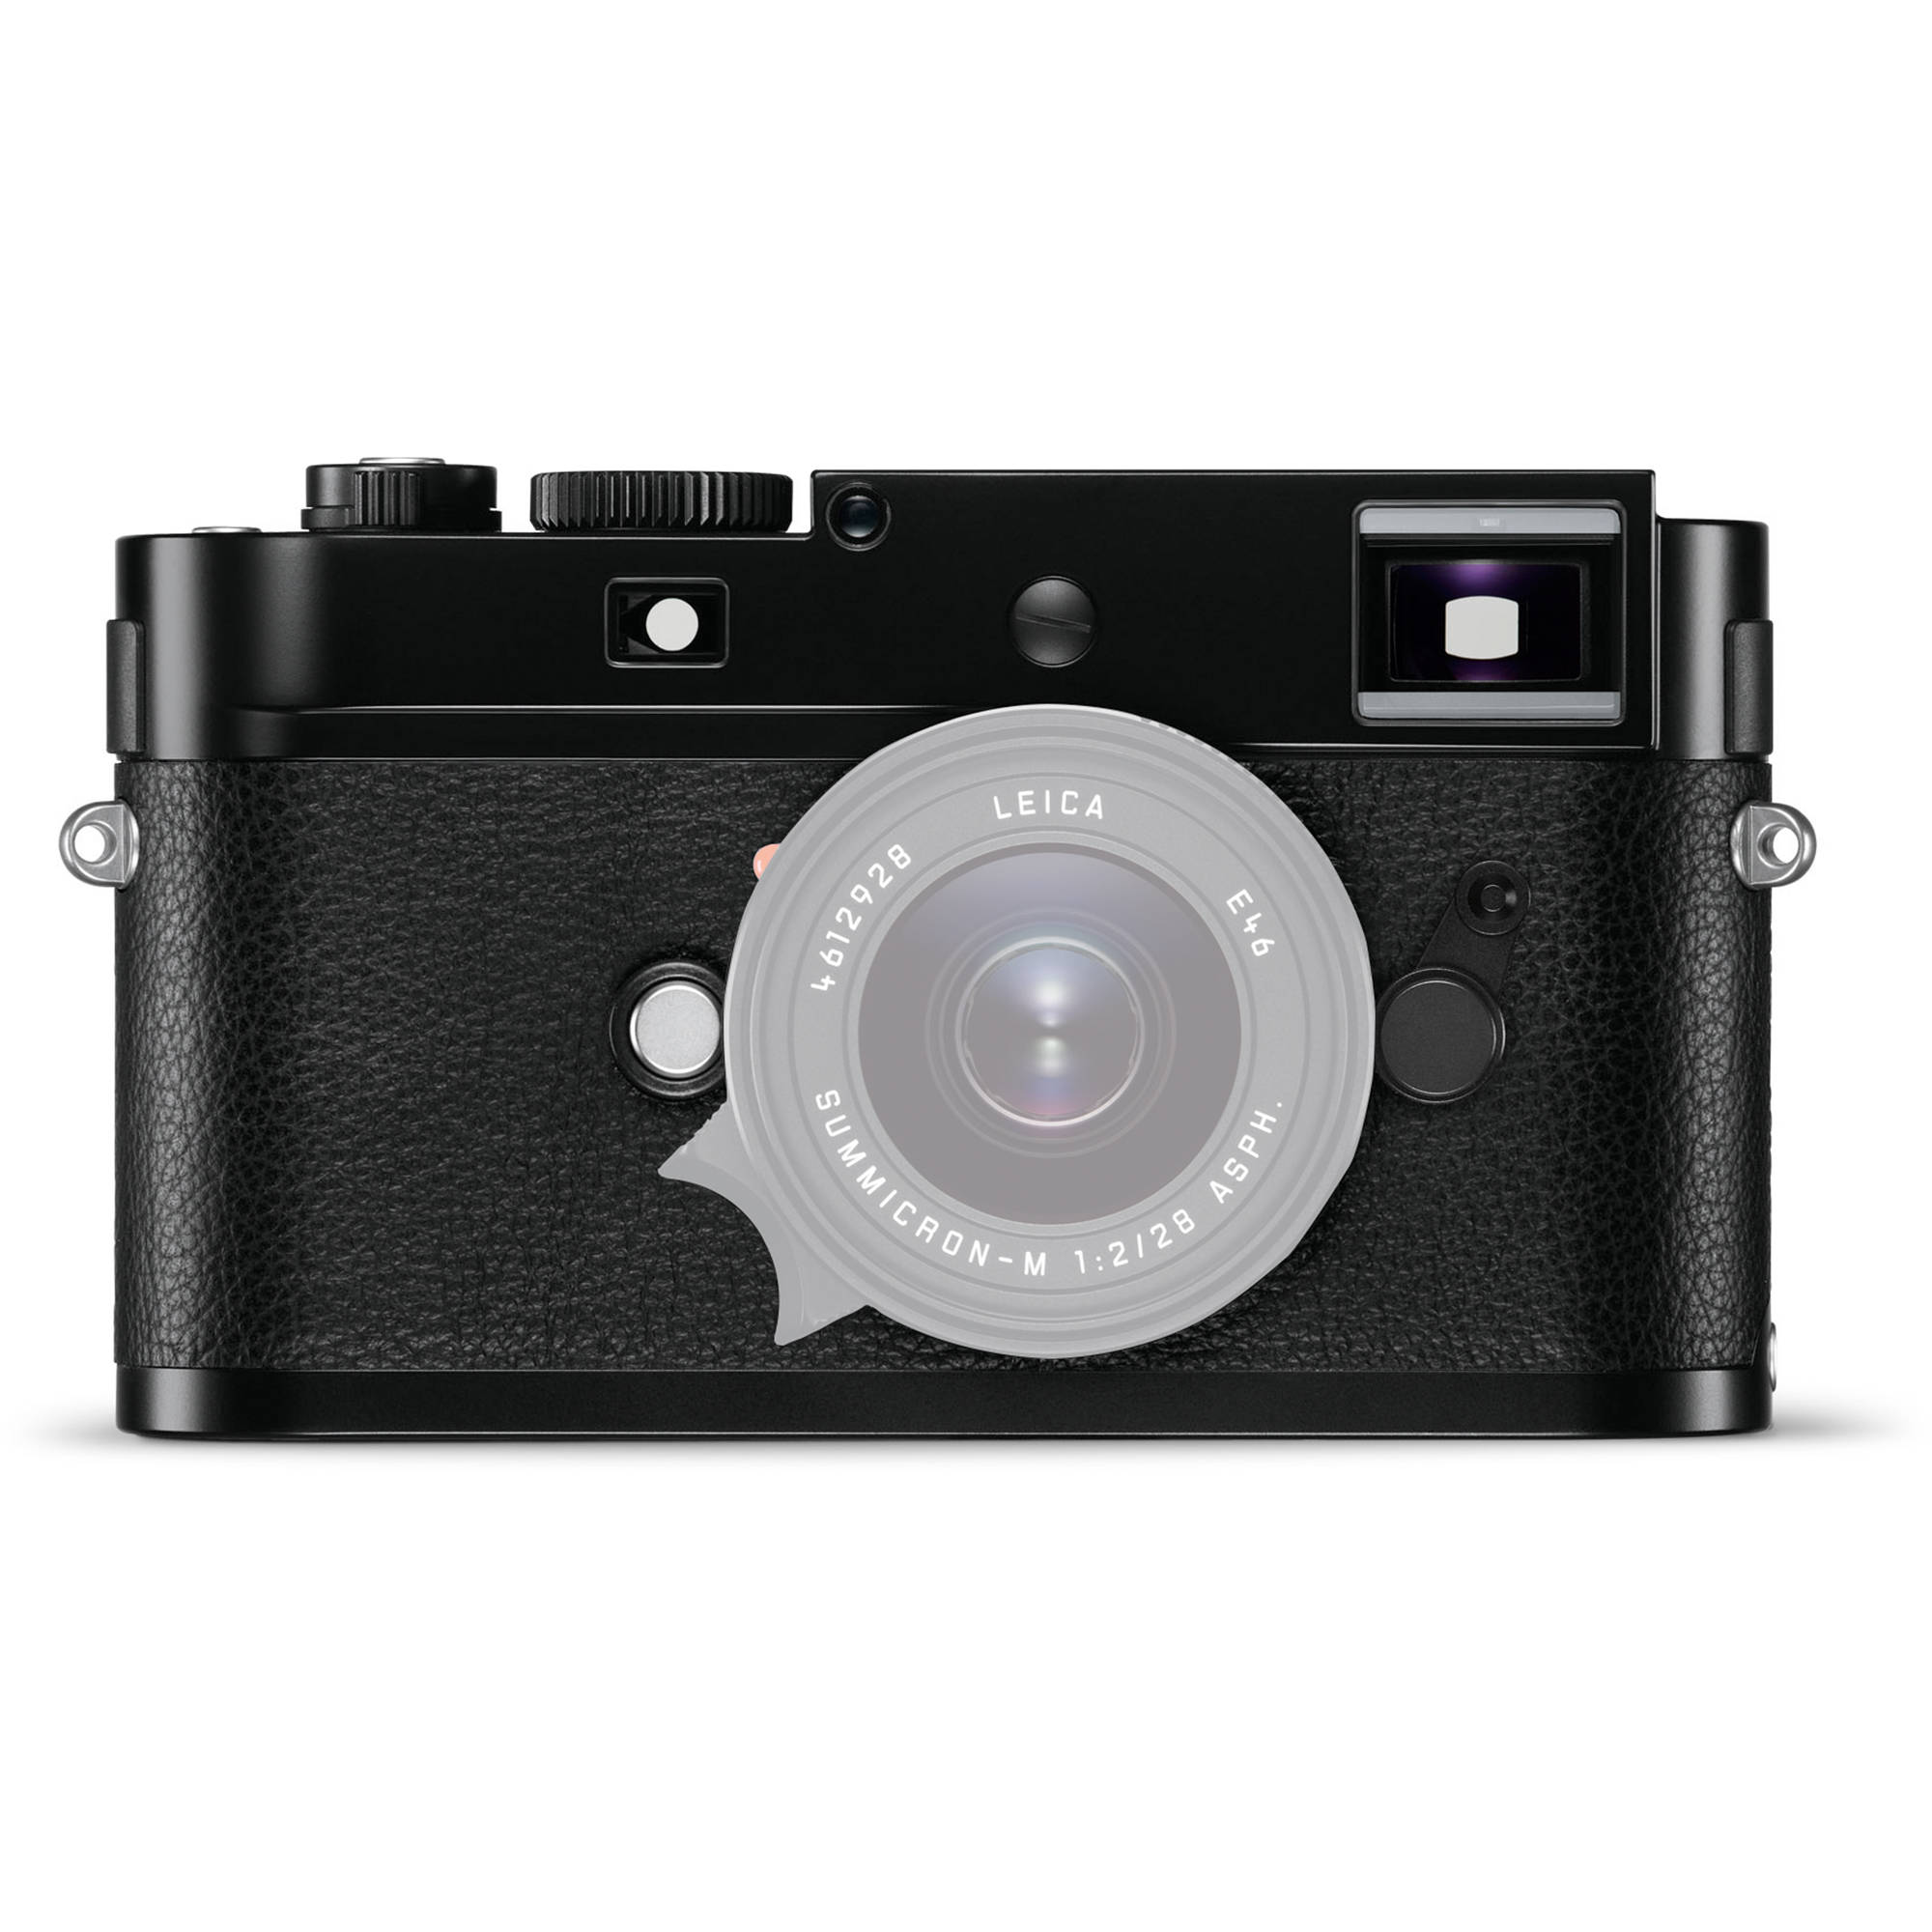 Leica M-D (Typ 262) Camera Drivers Update